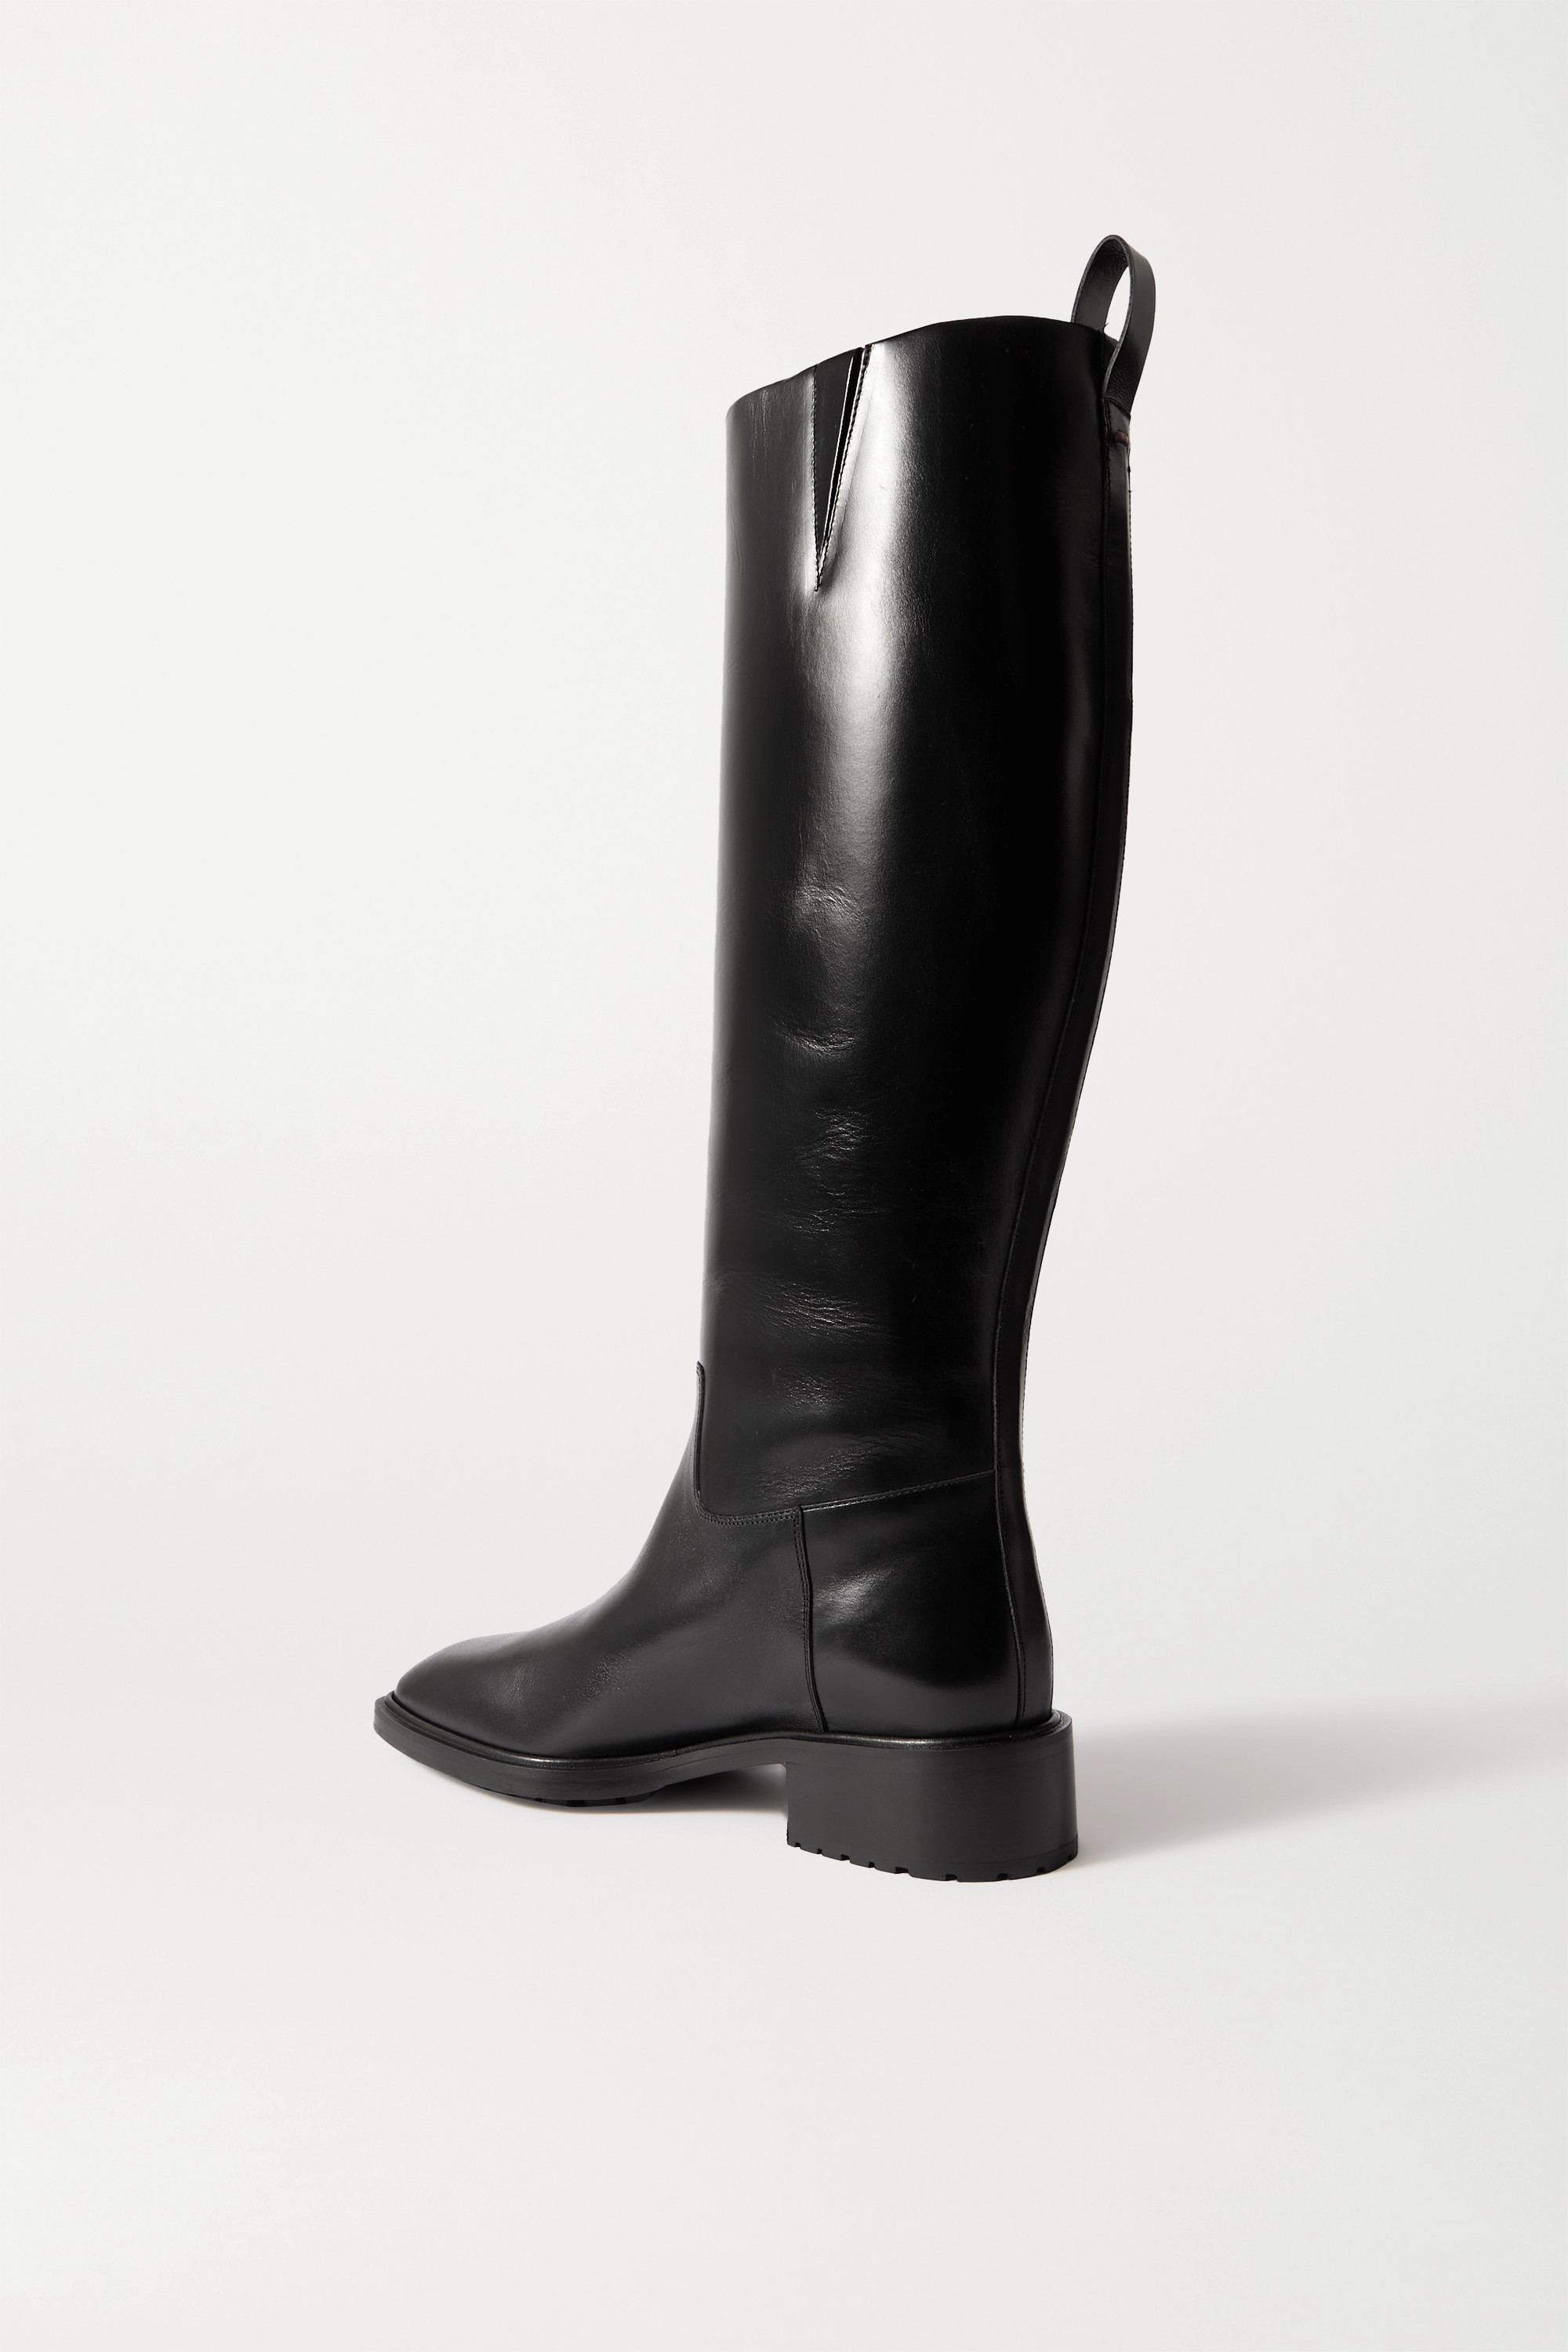 aeyde Tammy leather knee boots